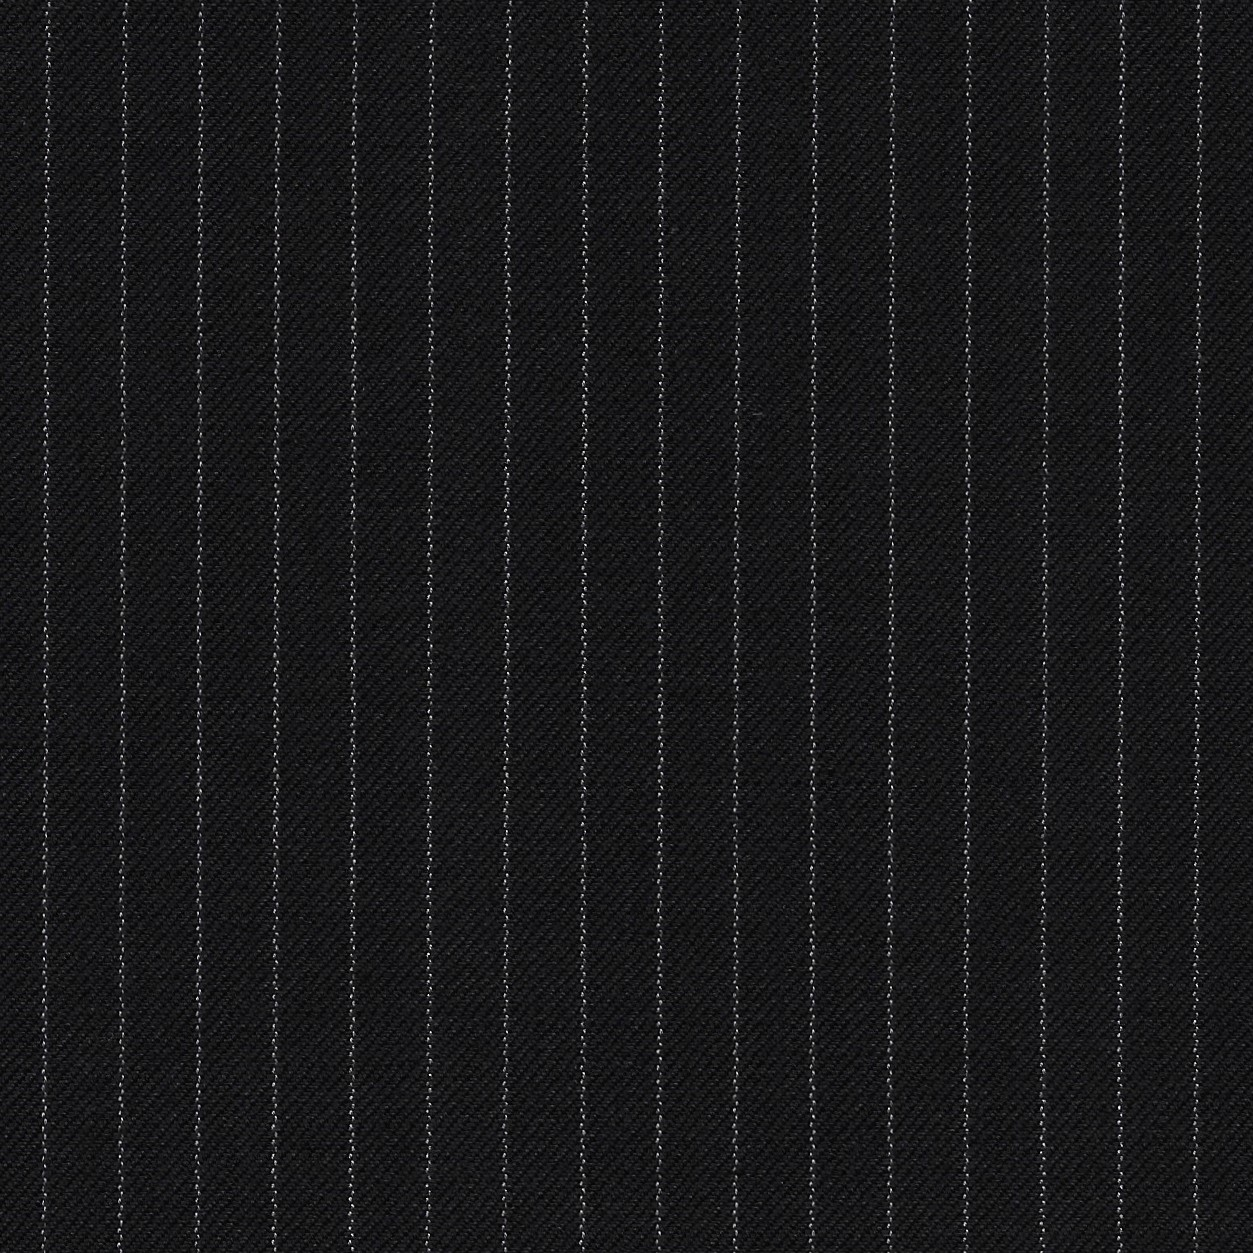 Dormeuil Amadeus Pure Wool Super 100s Dark Grey with Stripes